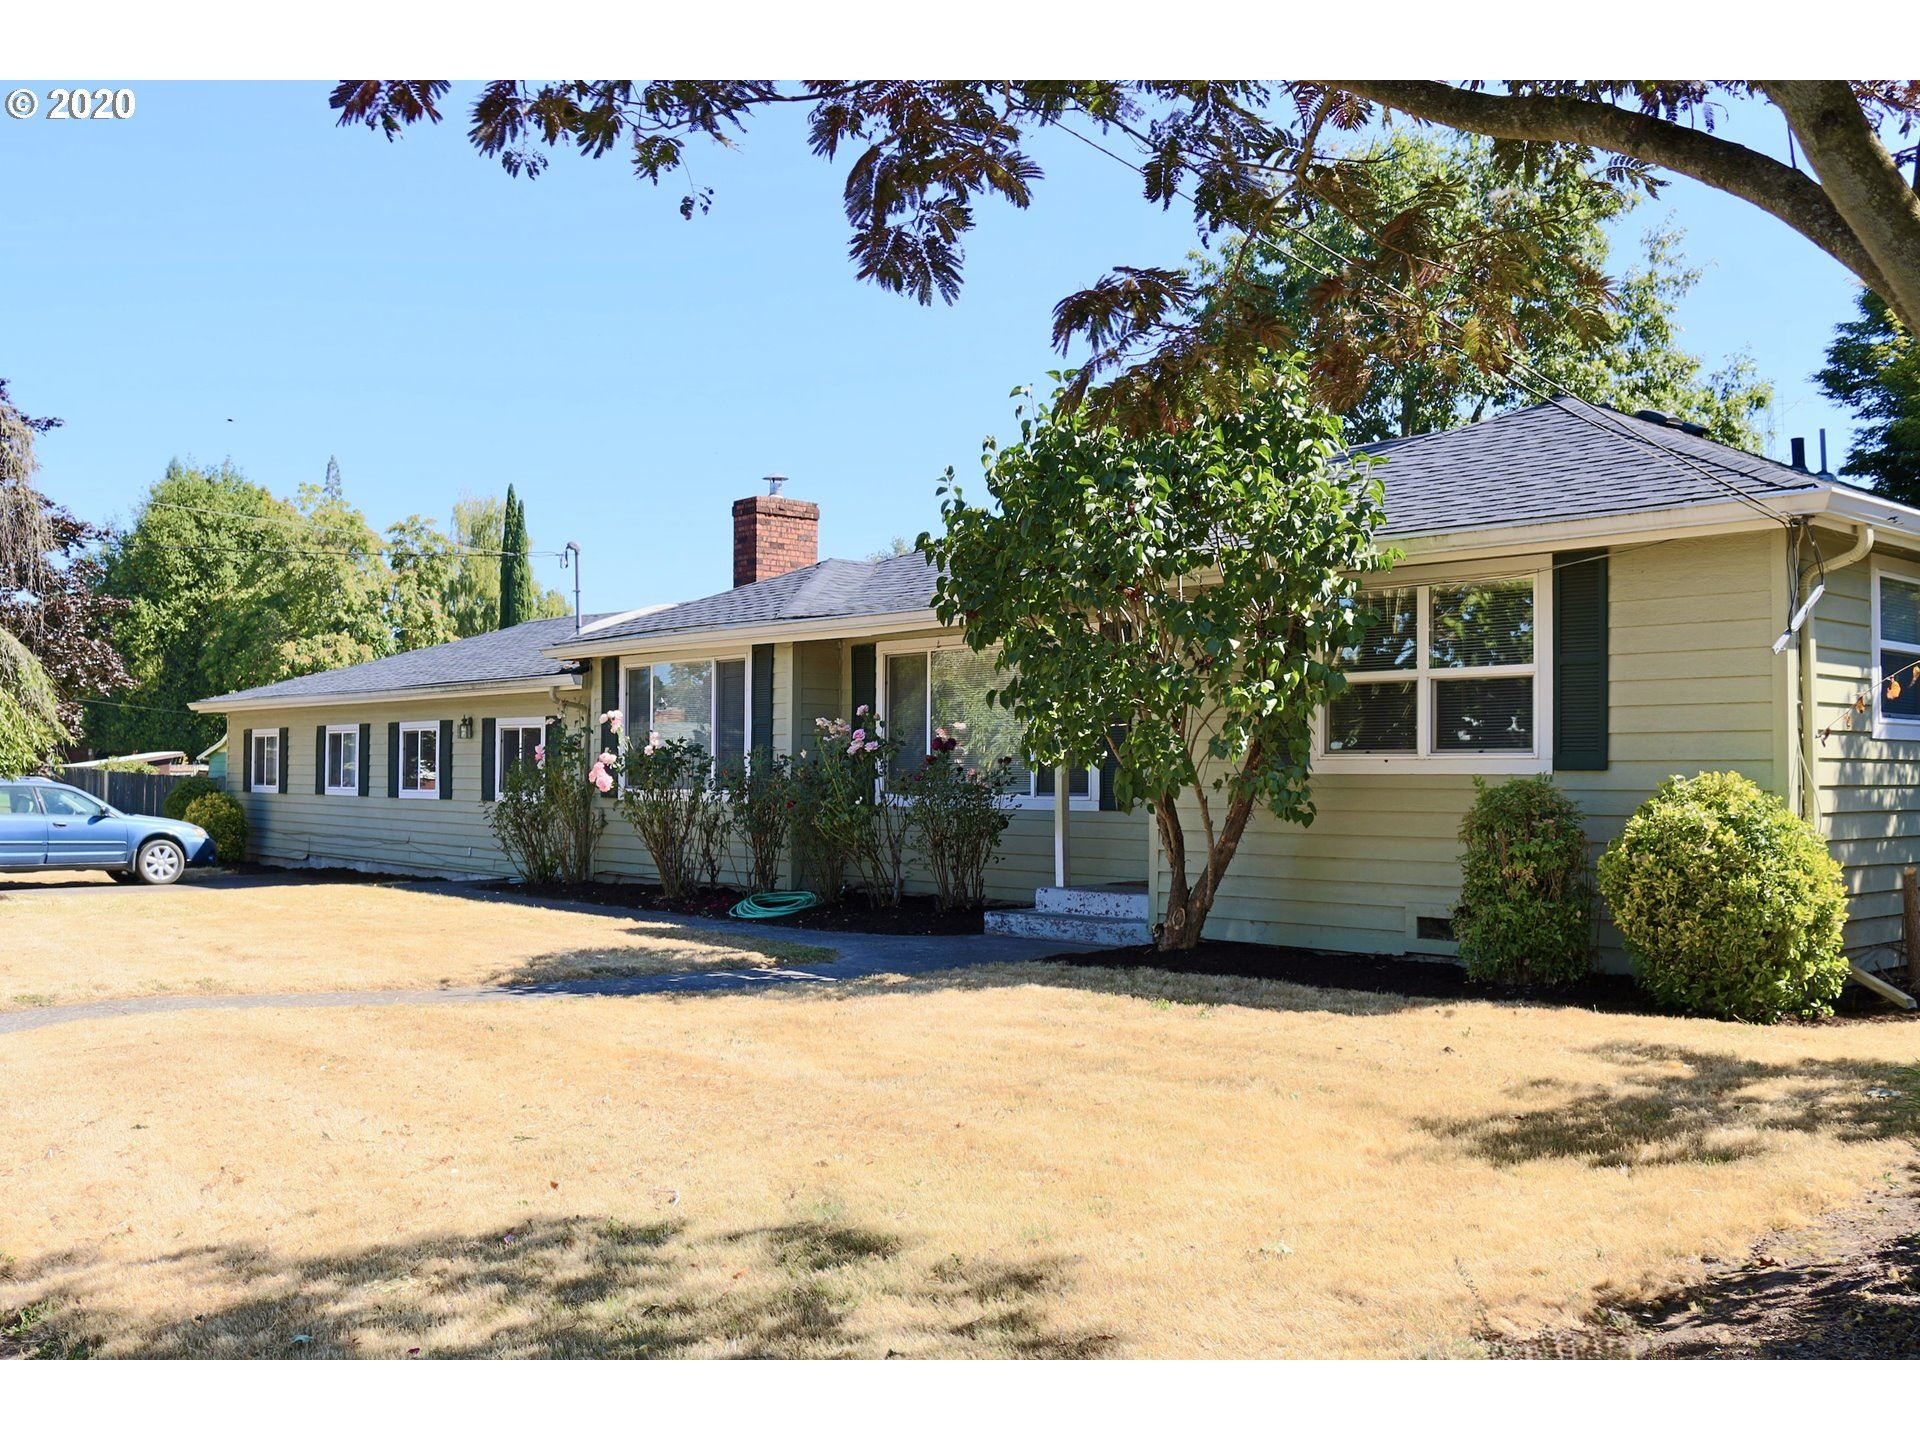 1240 SW BLAINE ST, McMinnville, OR 97128 - MLS#: 20156458